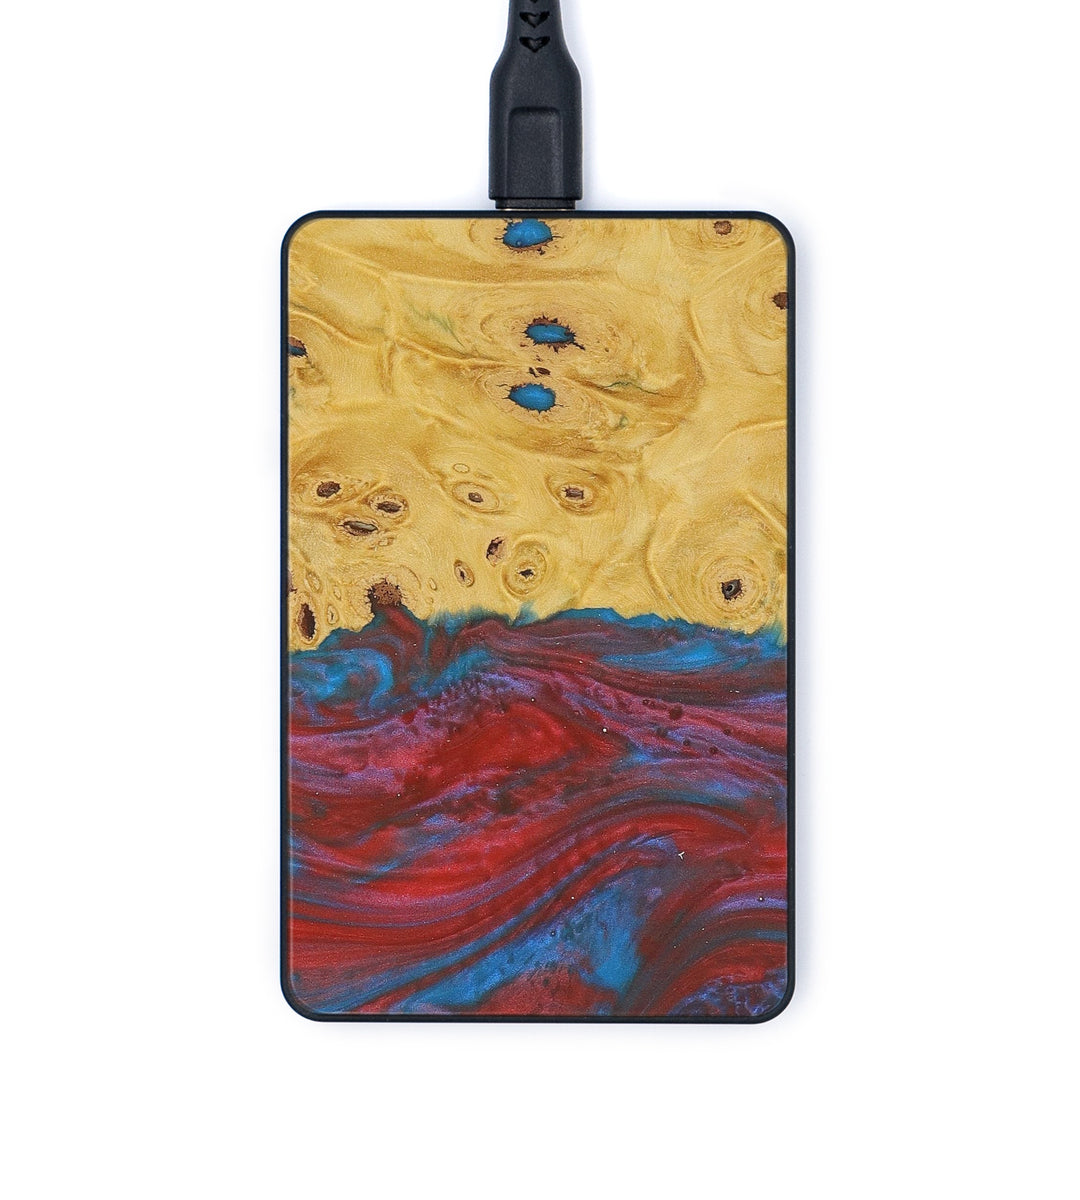 Thin Wood+Resin Wireless Charger - Lanny (Blue & Red, 362545)